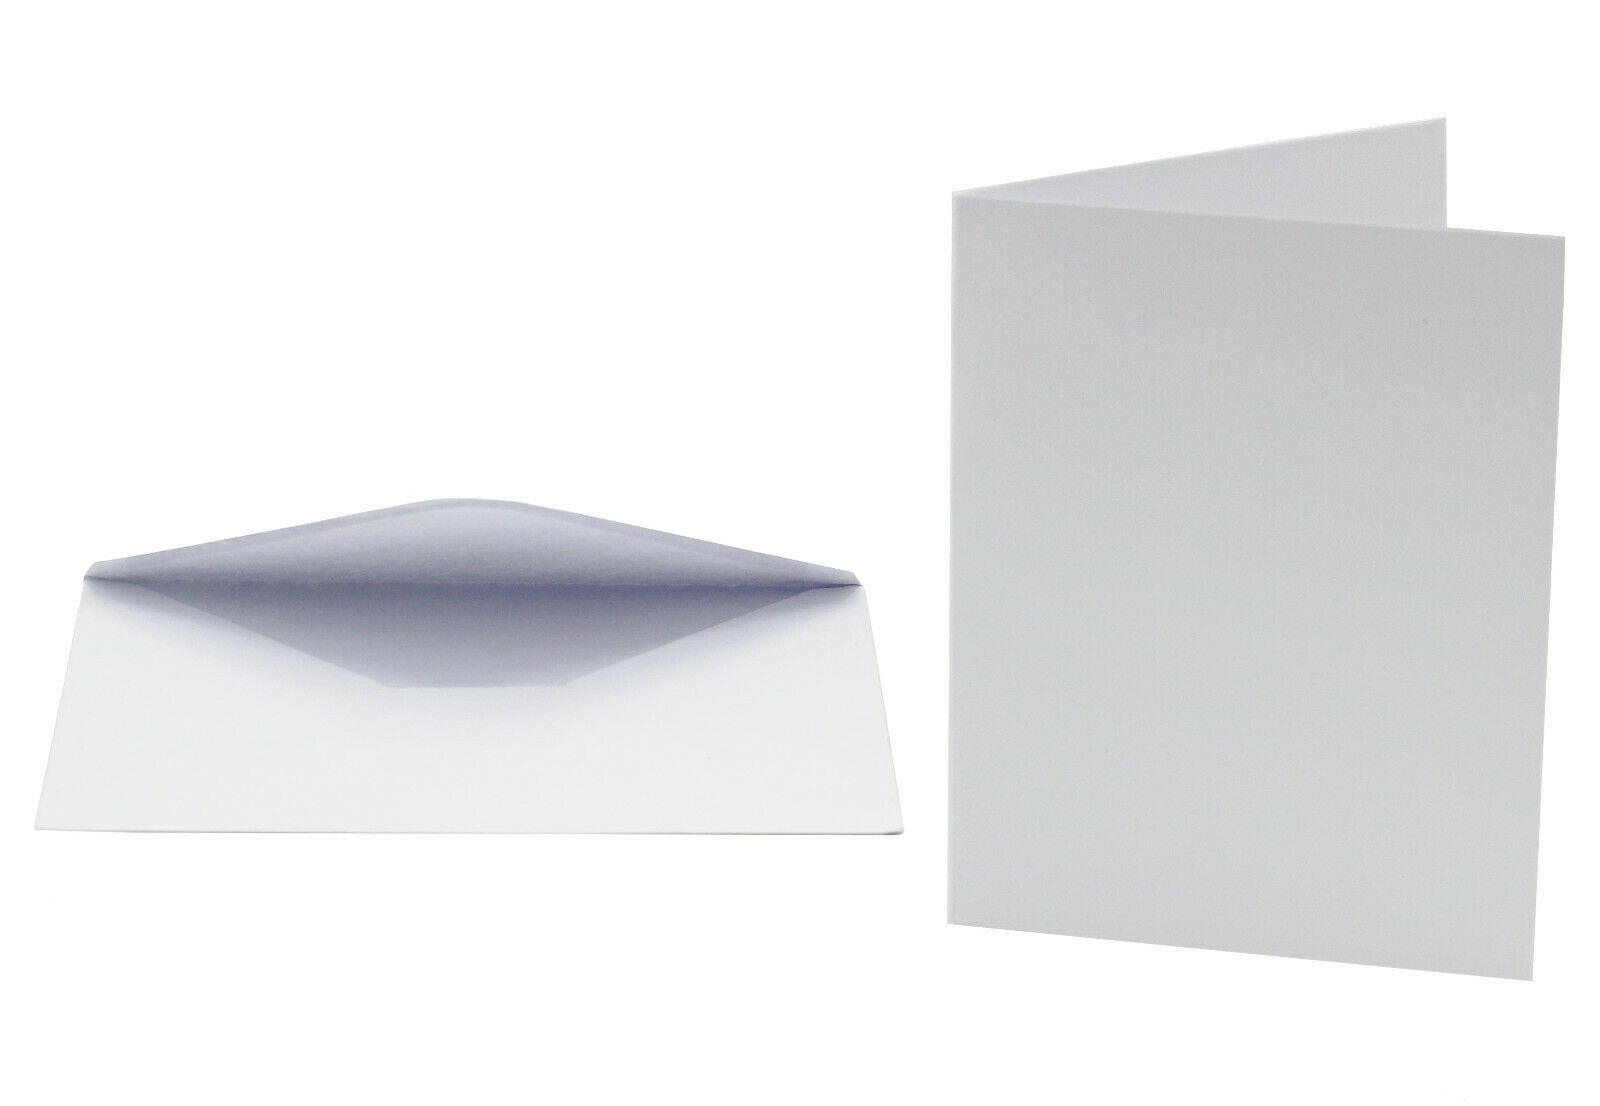 A2 Blank White Cards with Envelopes, Perfect for Invitations, Holidays – 50 Pack Crafts